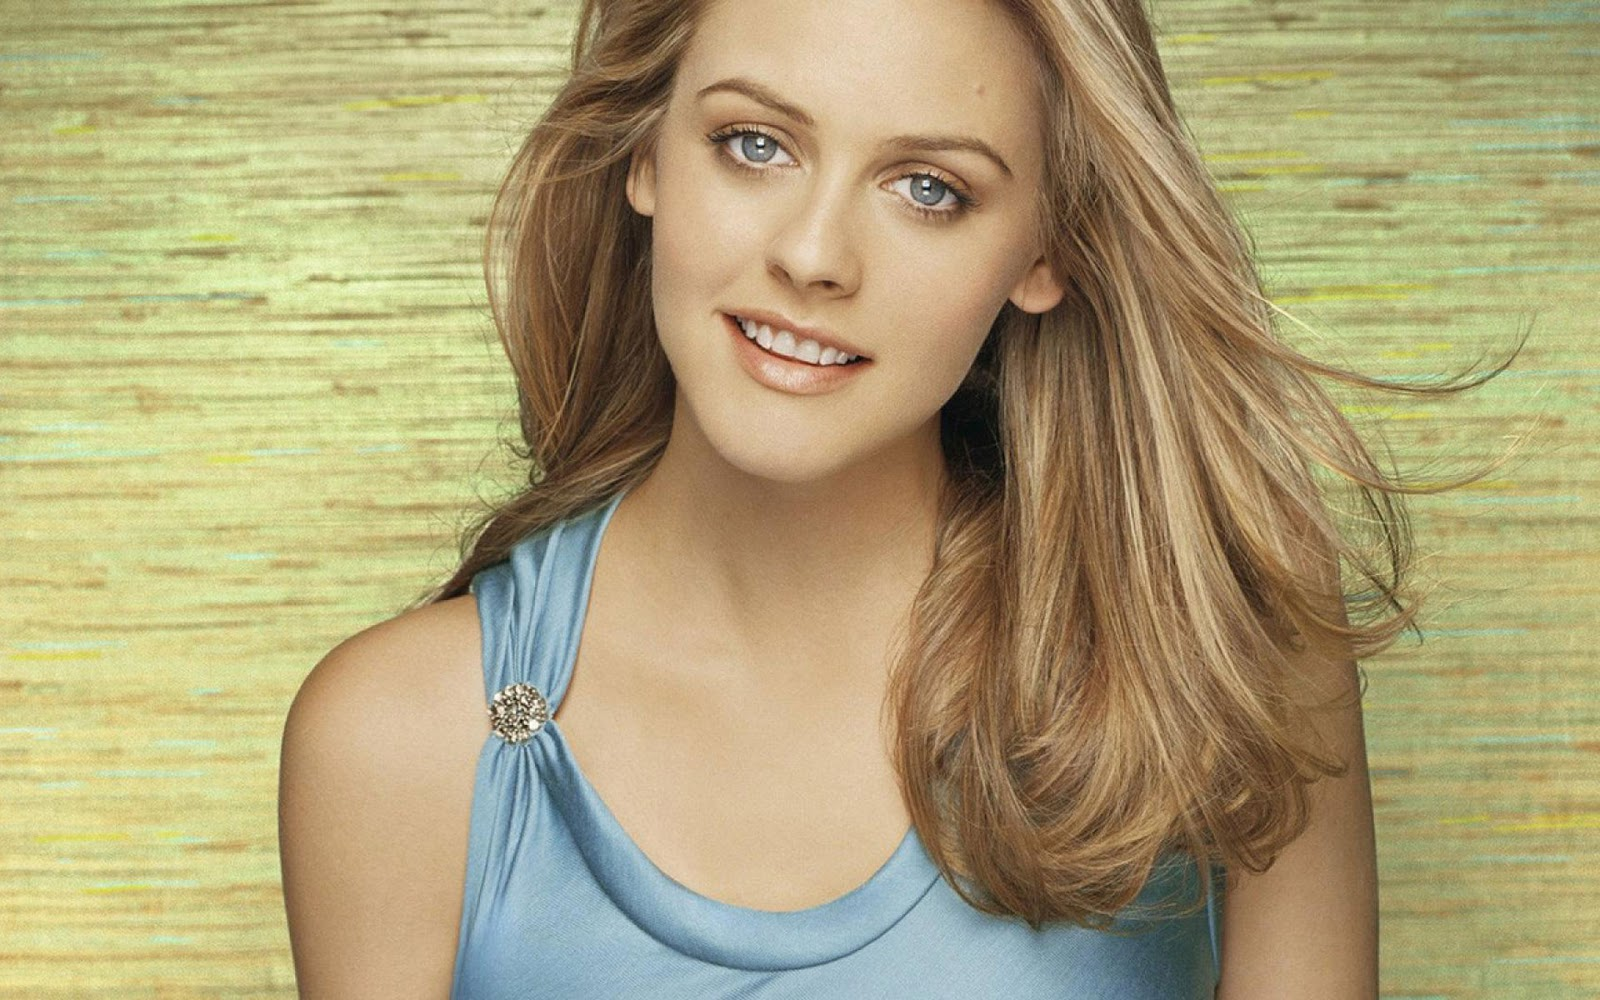 Alicia silverstone hollywood actress hd wallpaper hd - Hollywood actress hd wallpaper ...